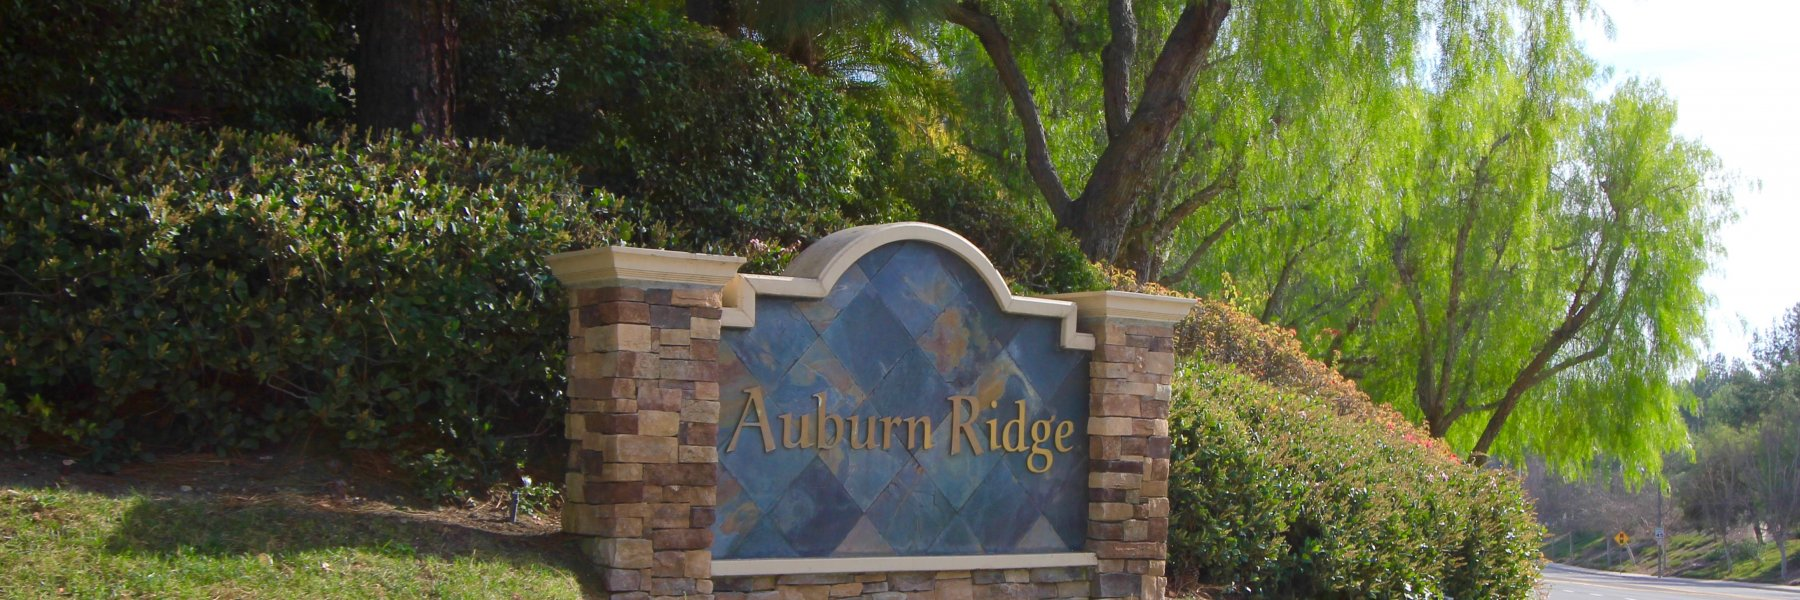 Auburn Ridge is a community of homes in Mission Viejo California